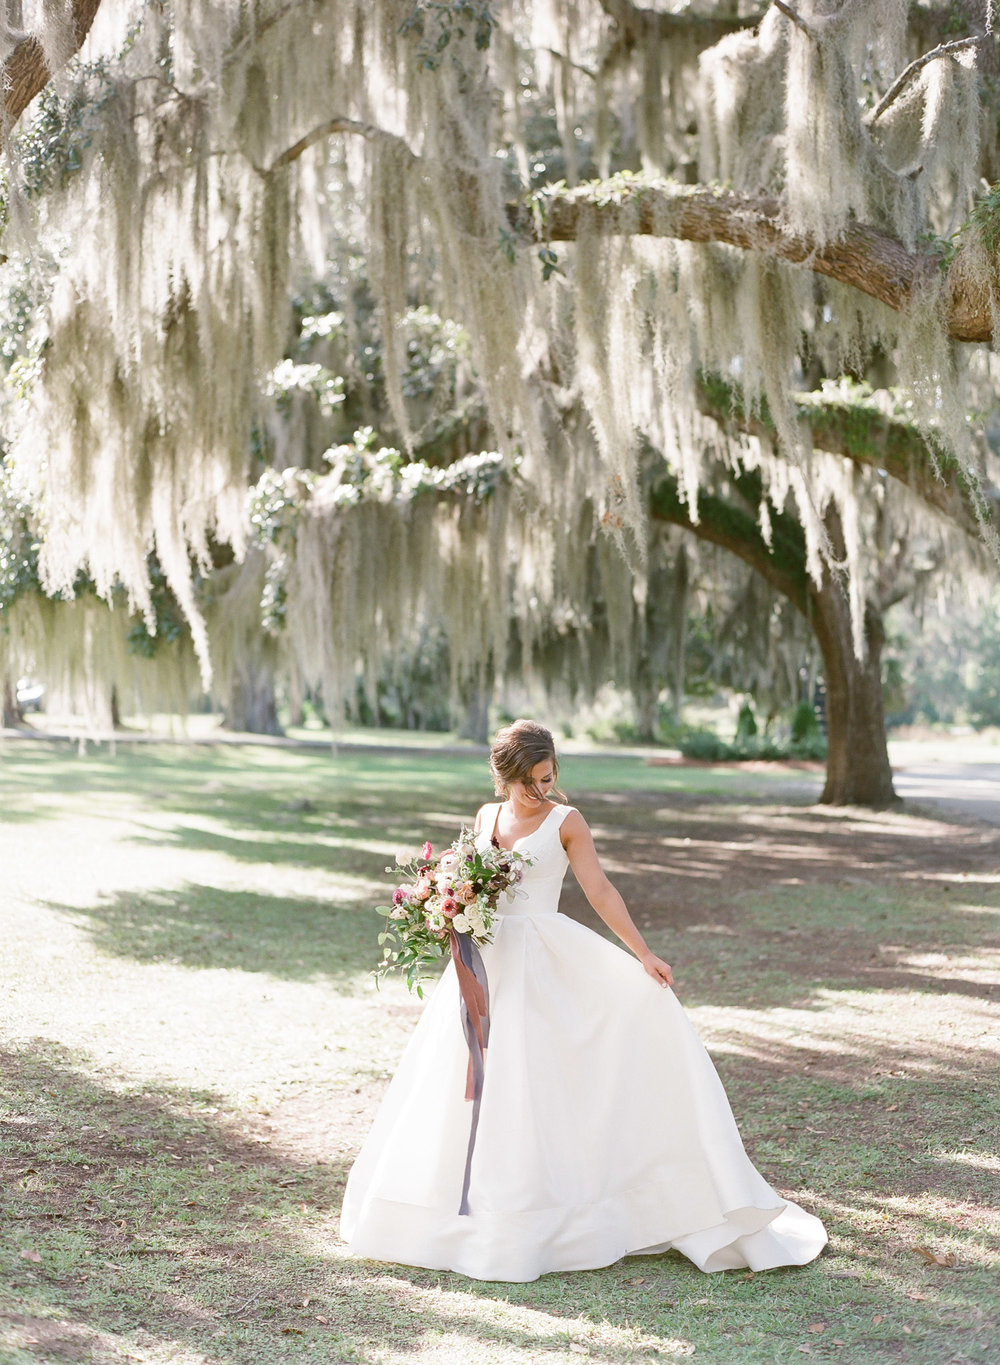 Charleston-Wedding-Photographer-22.jpg